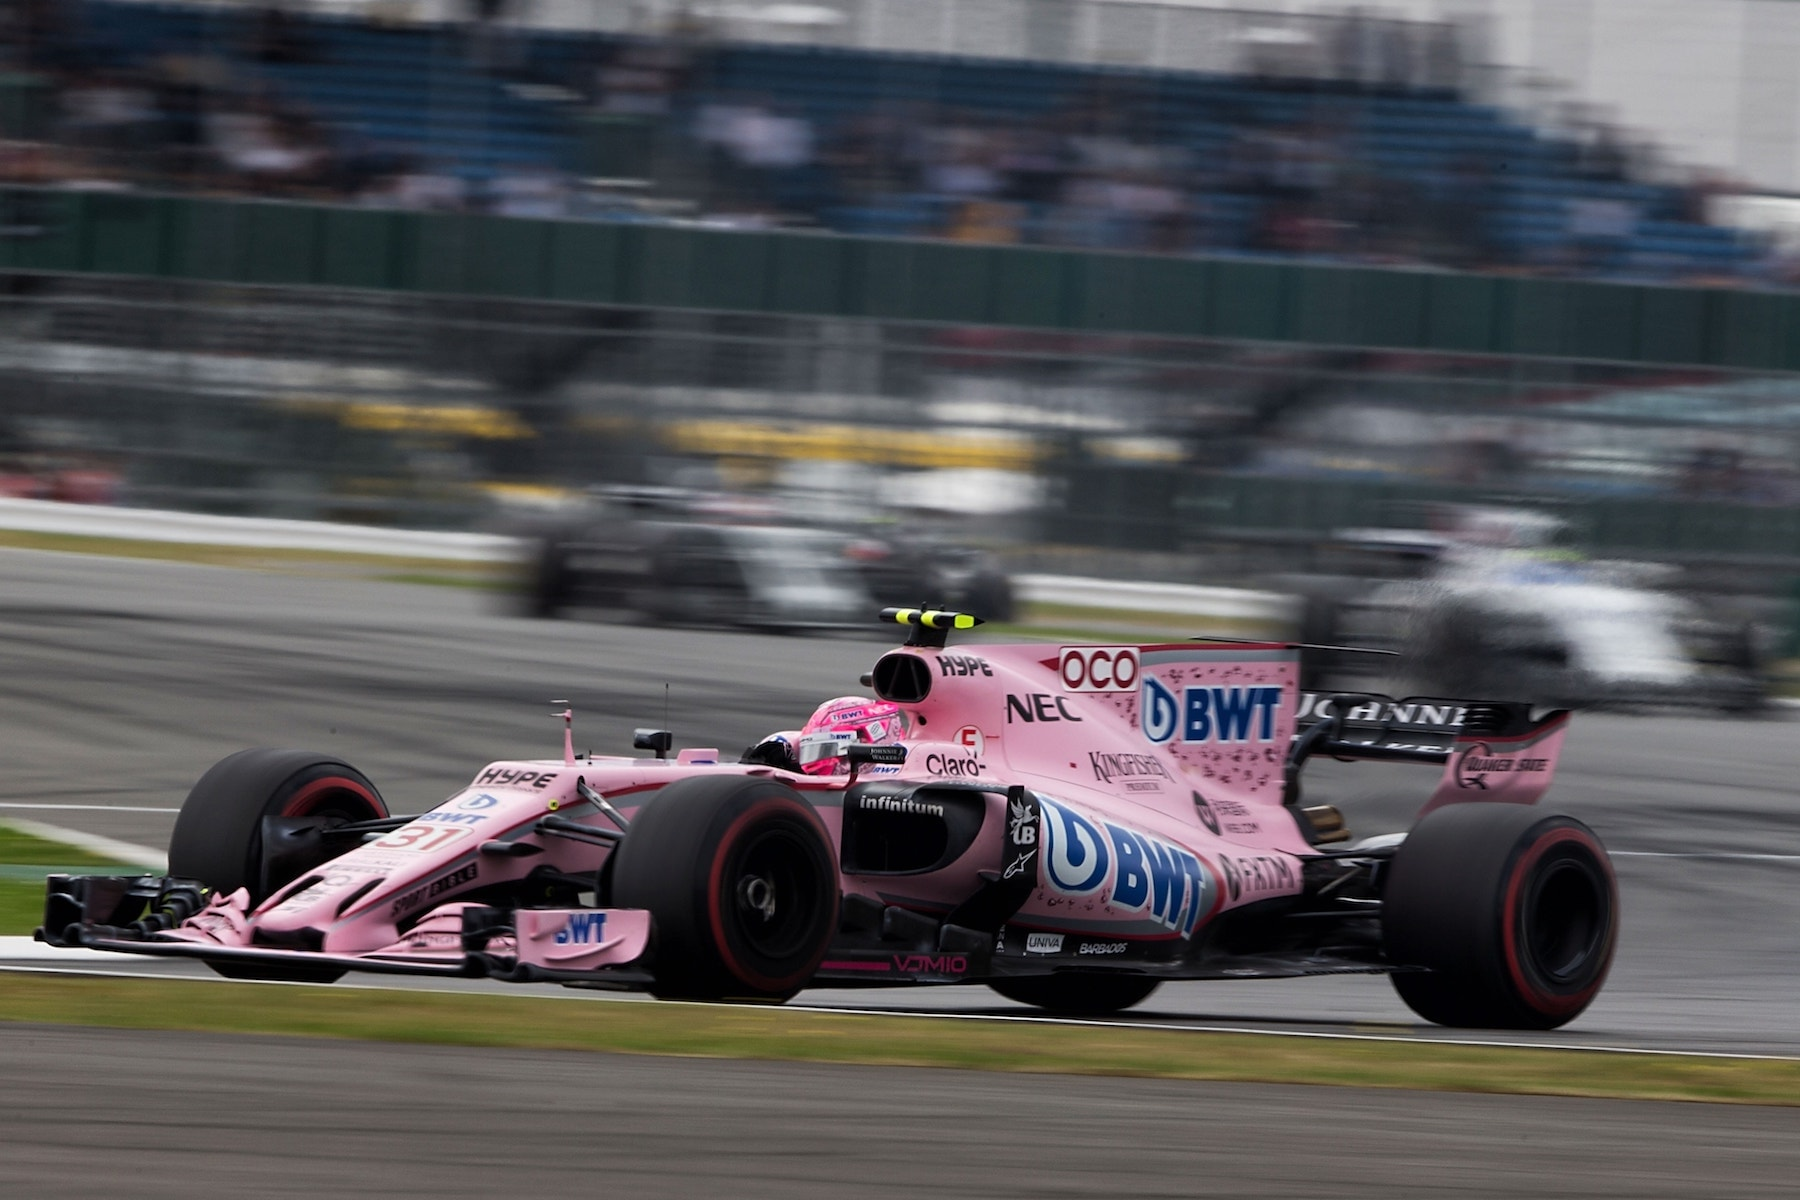 J 2017 Esteban Ocon | Force India VJM10 | 2010 British GP 2 copy.jpg